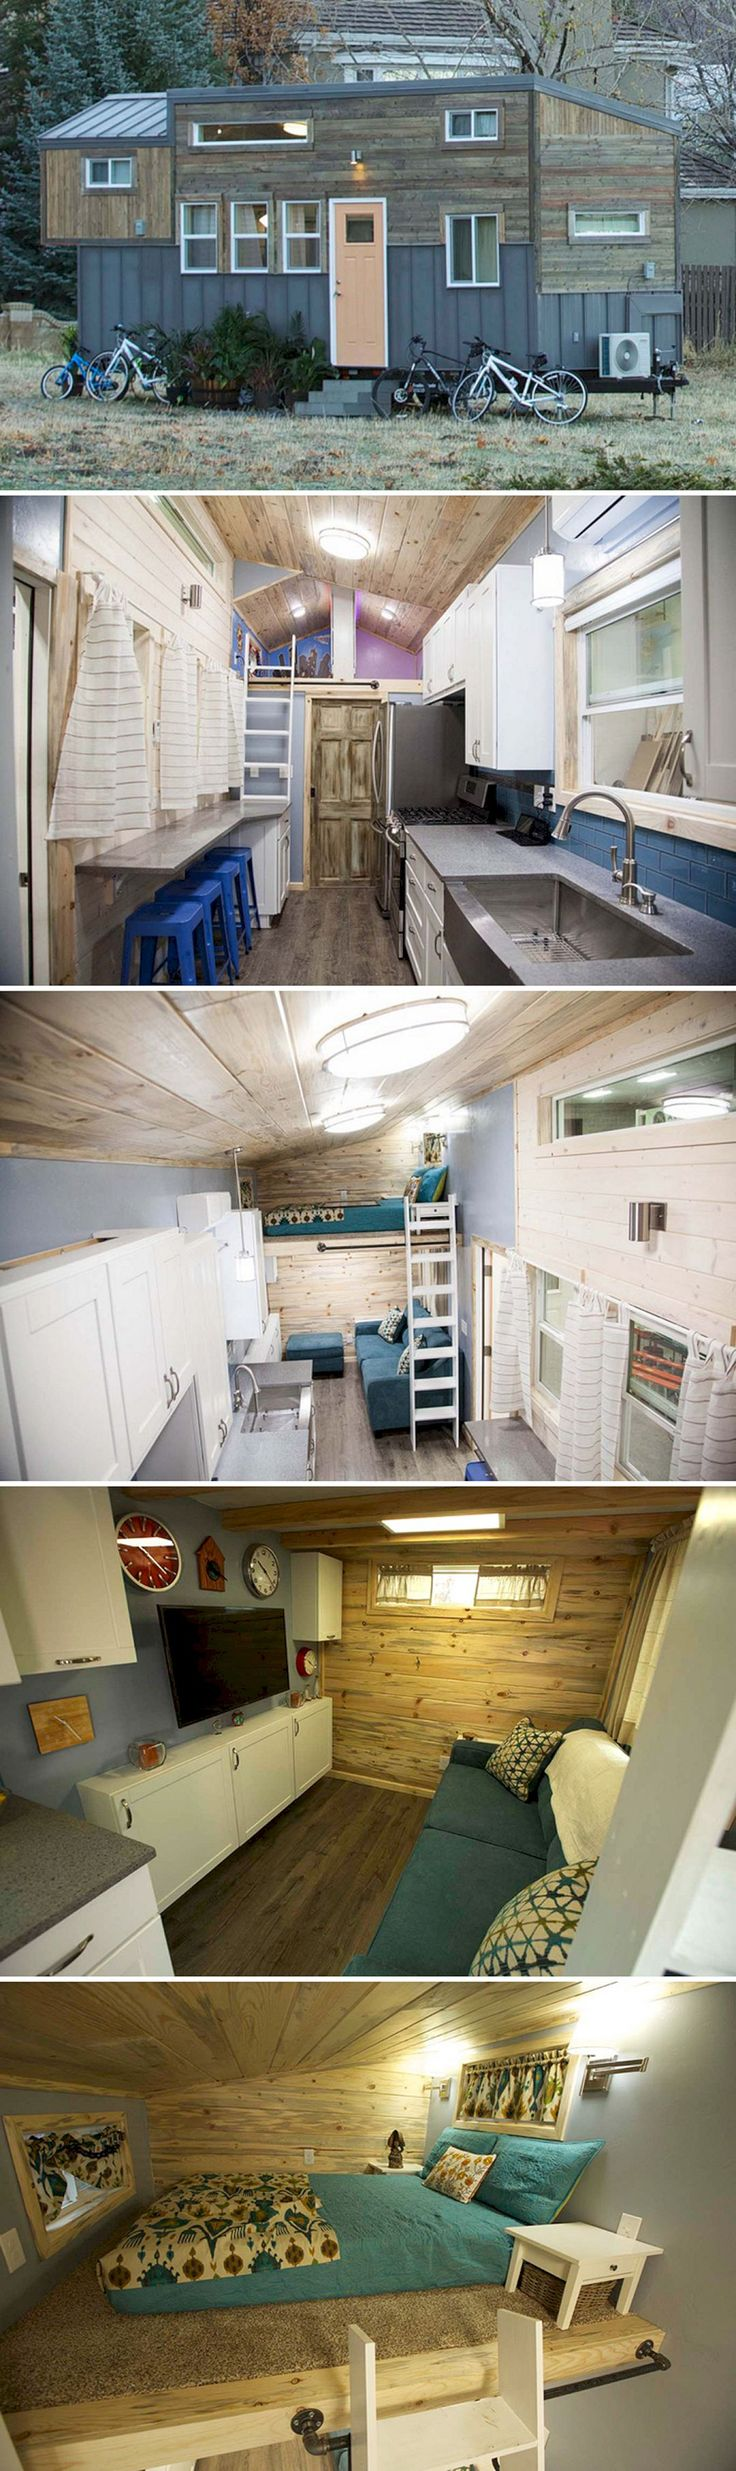 Best 25+ Tiny House Design Ideas On Pinterest | Tiny Houses, Tiny Living  And Small House Interiors